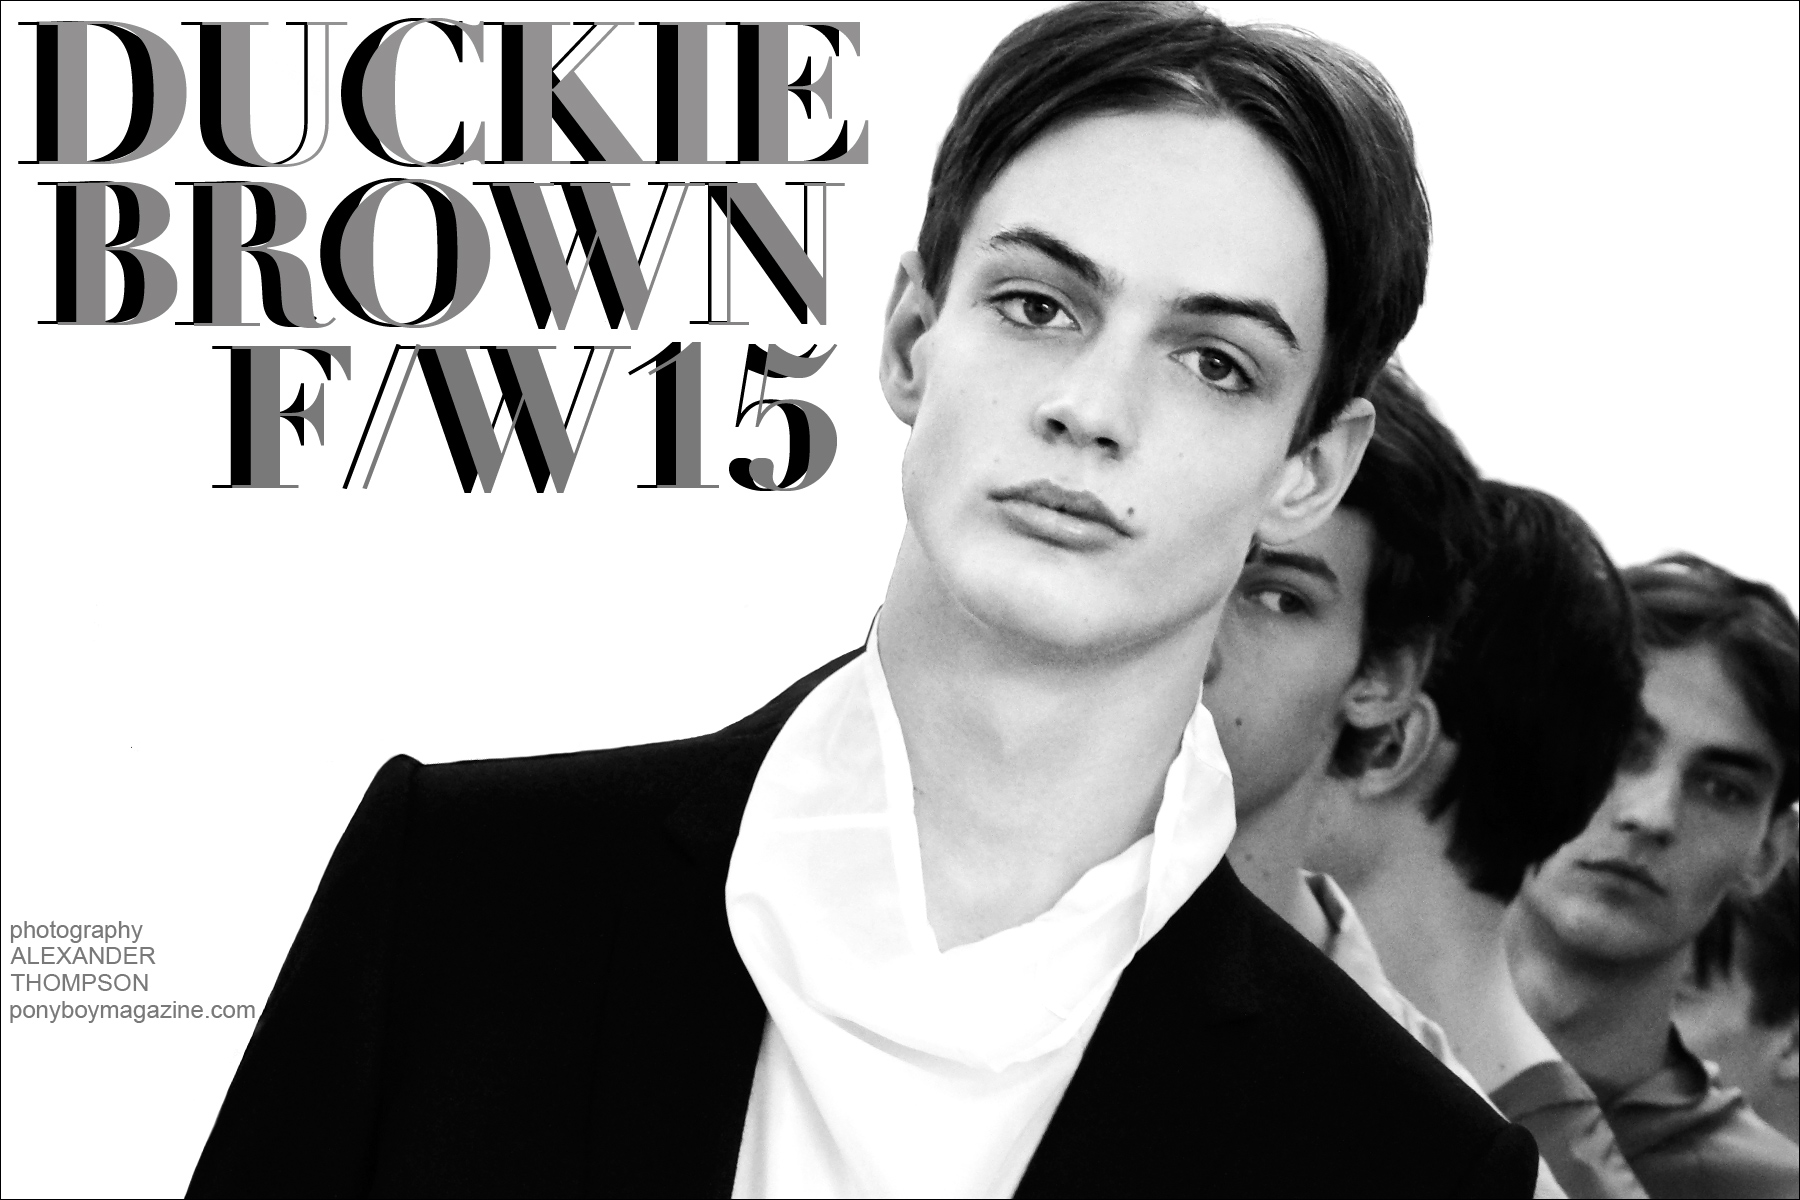 Opening spread for Ponyboy magazine backstage Duckie Brown F/W15 feature, with a photo of male model Charlie James. Photographs by Alexander Thompson.